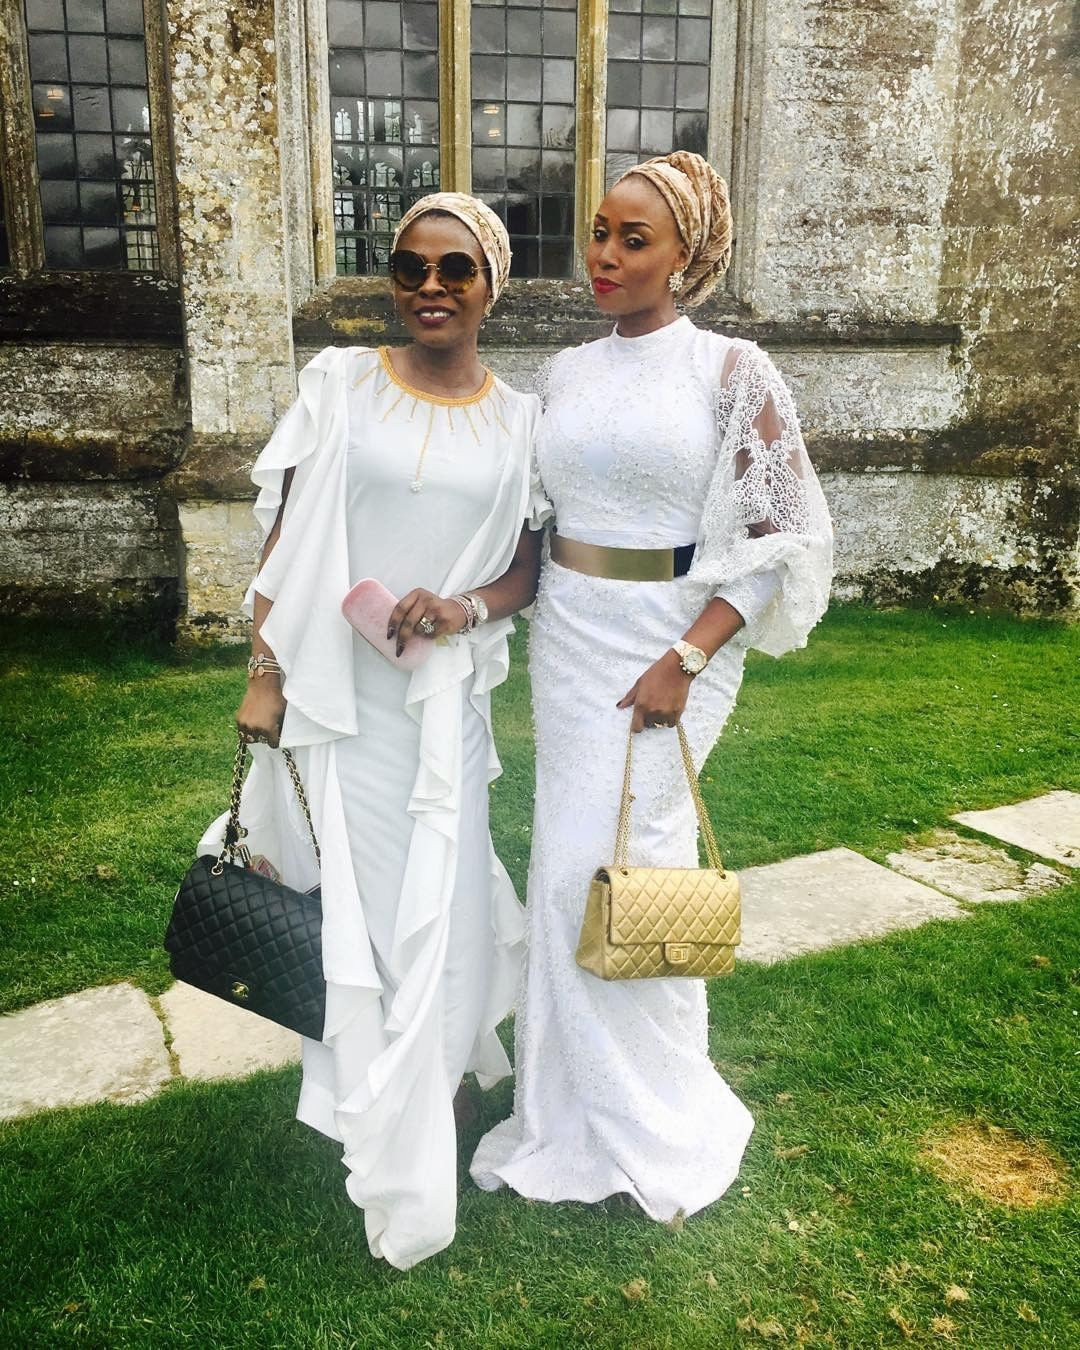 White outfit instagram with bridal clothing, wedding dress, evening gown